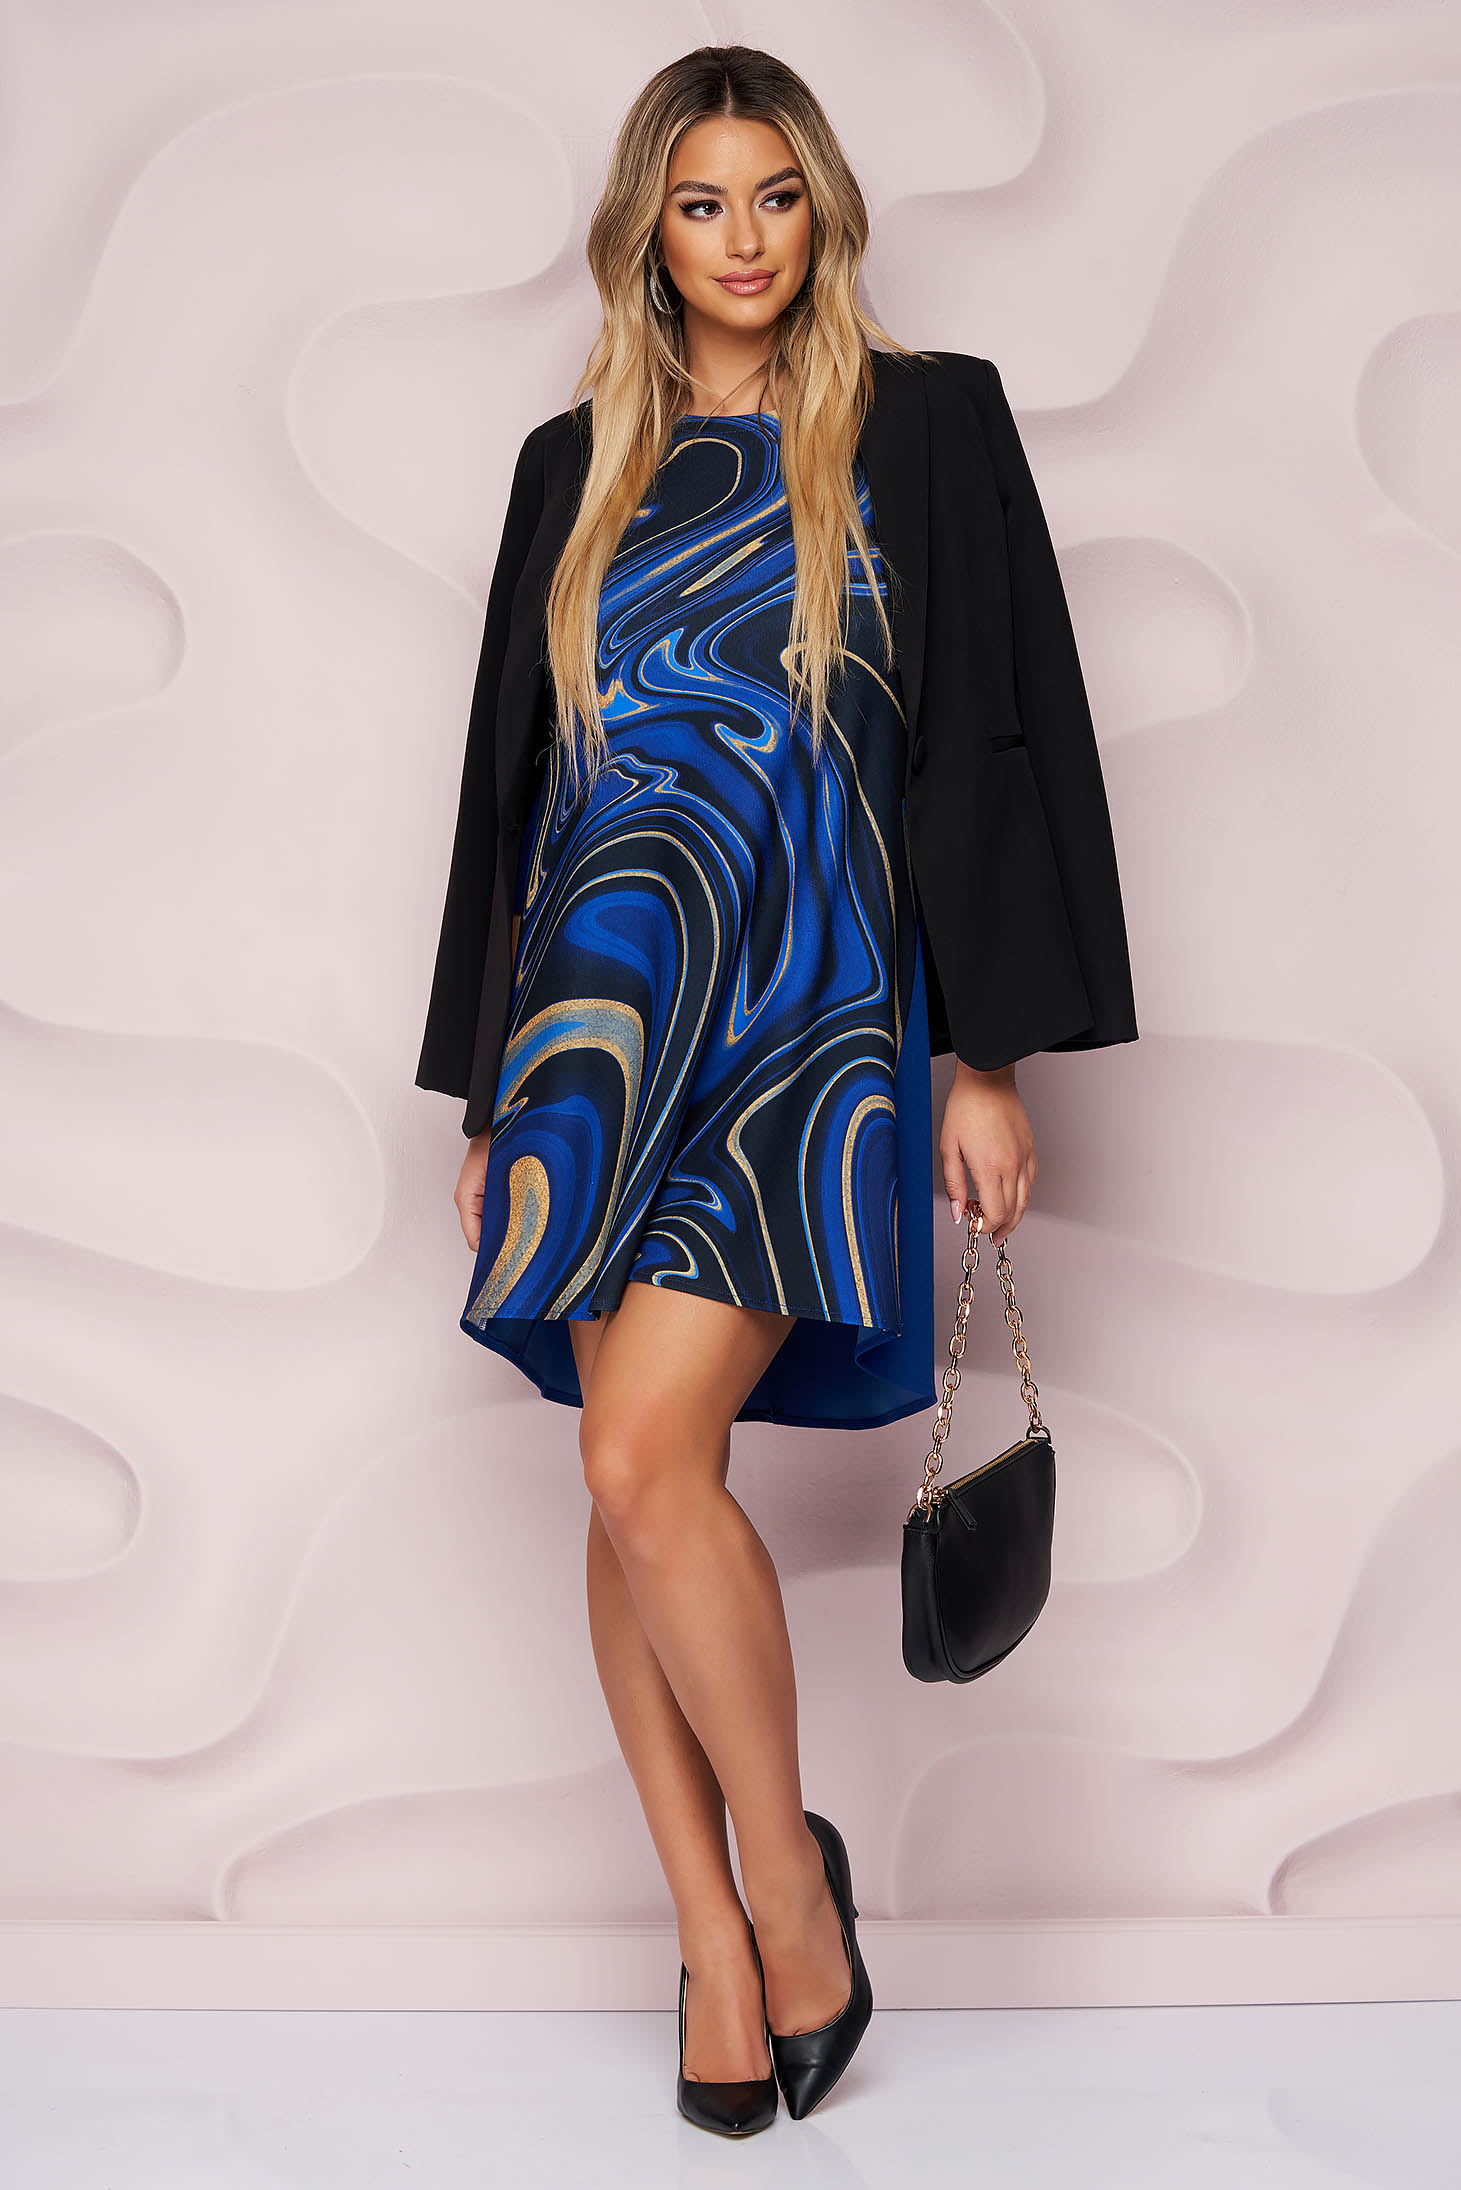 StarShinerS dress with graphic details light material from elastic fabric office loose fit short cut